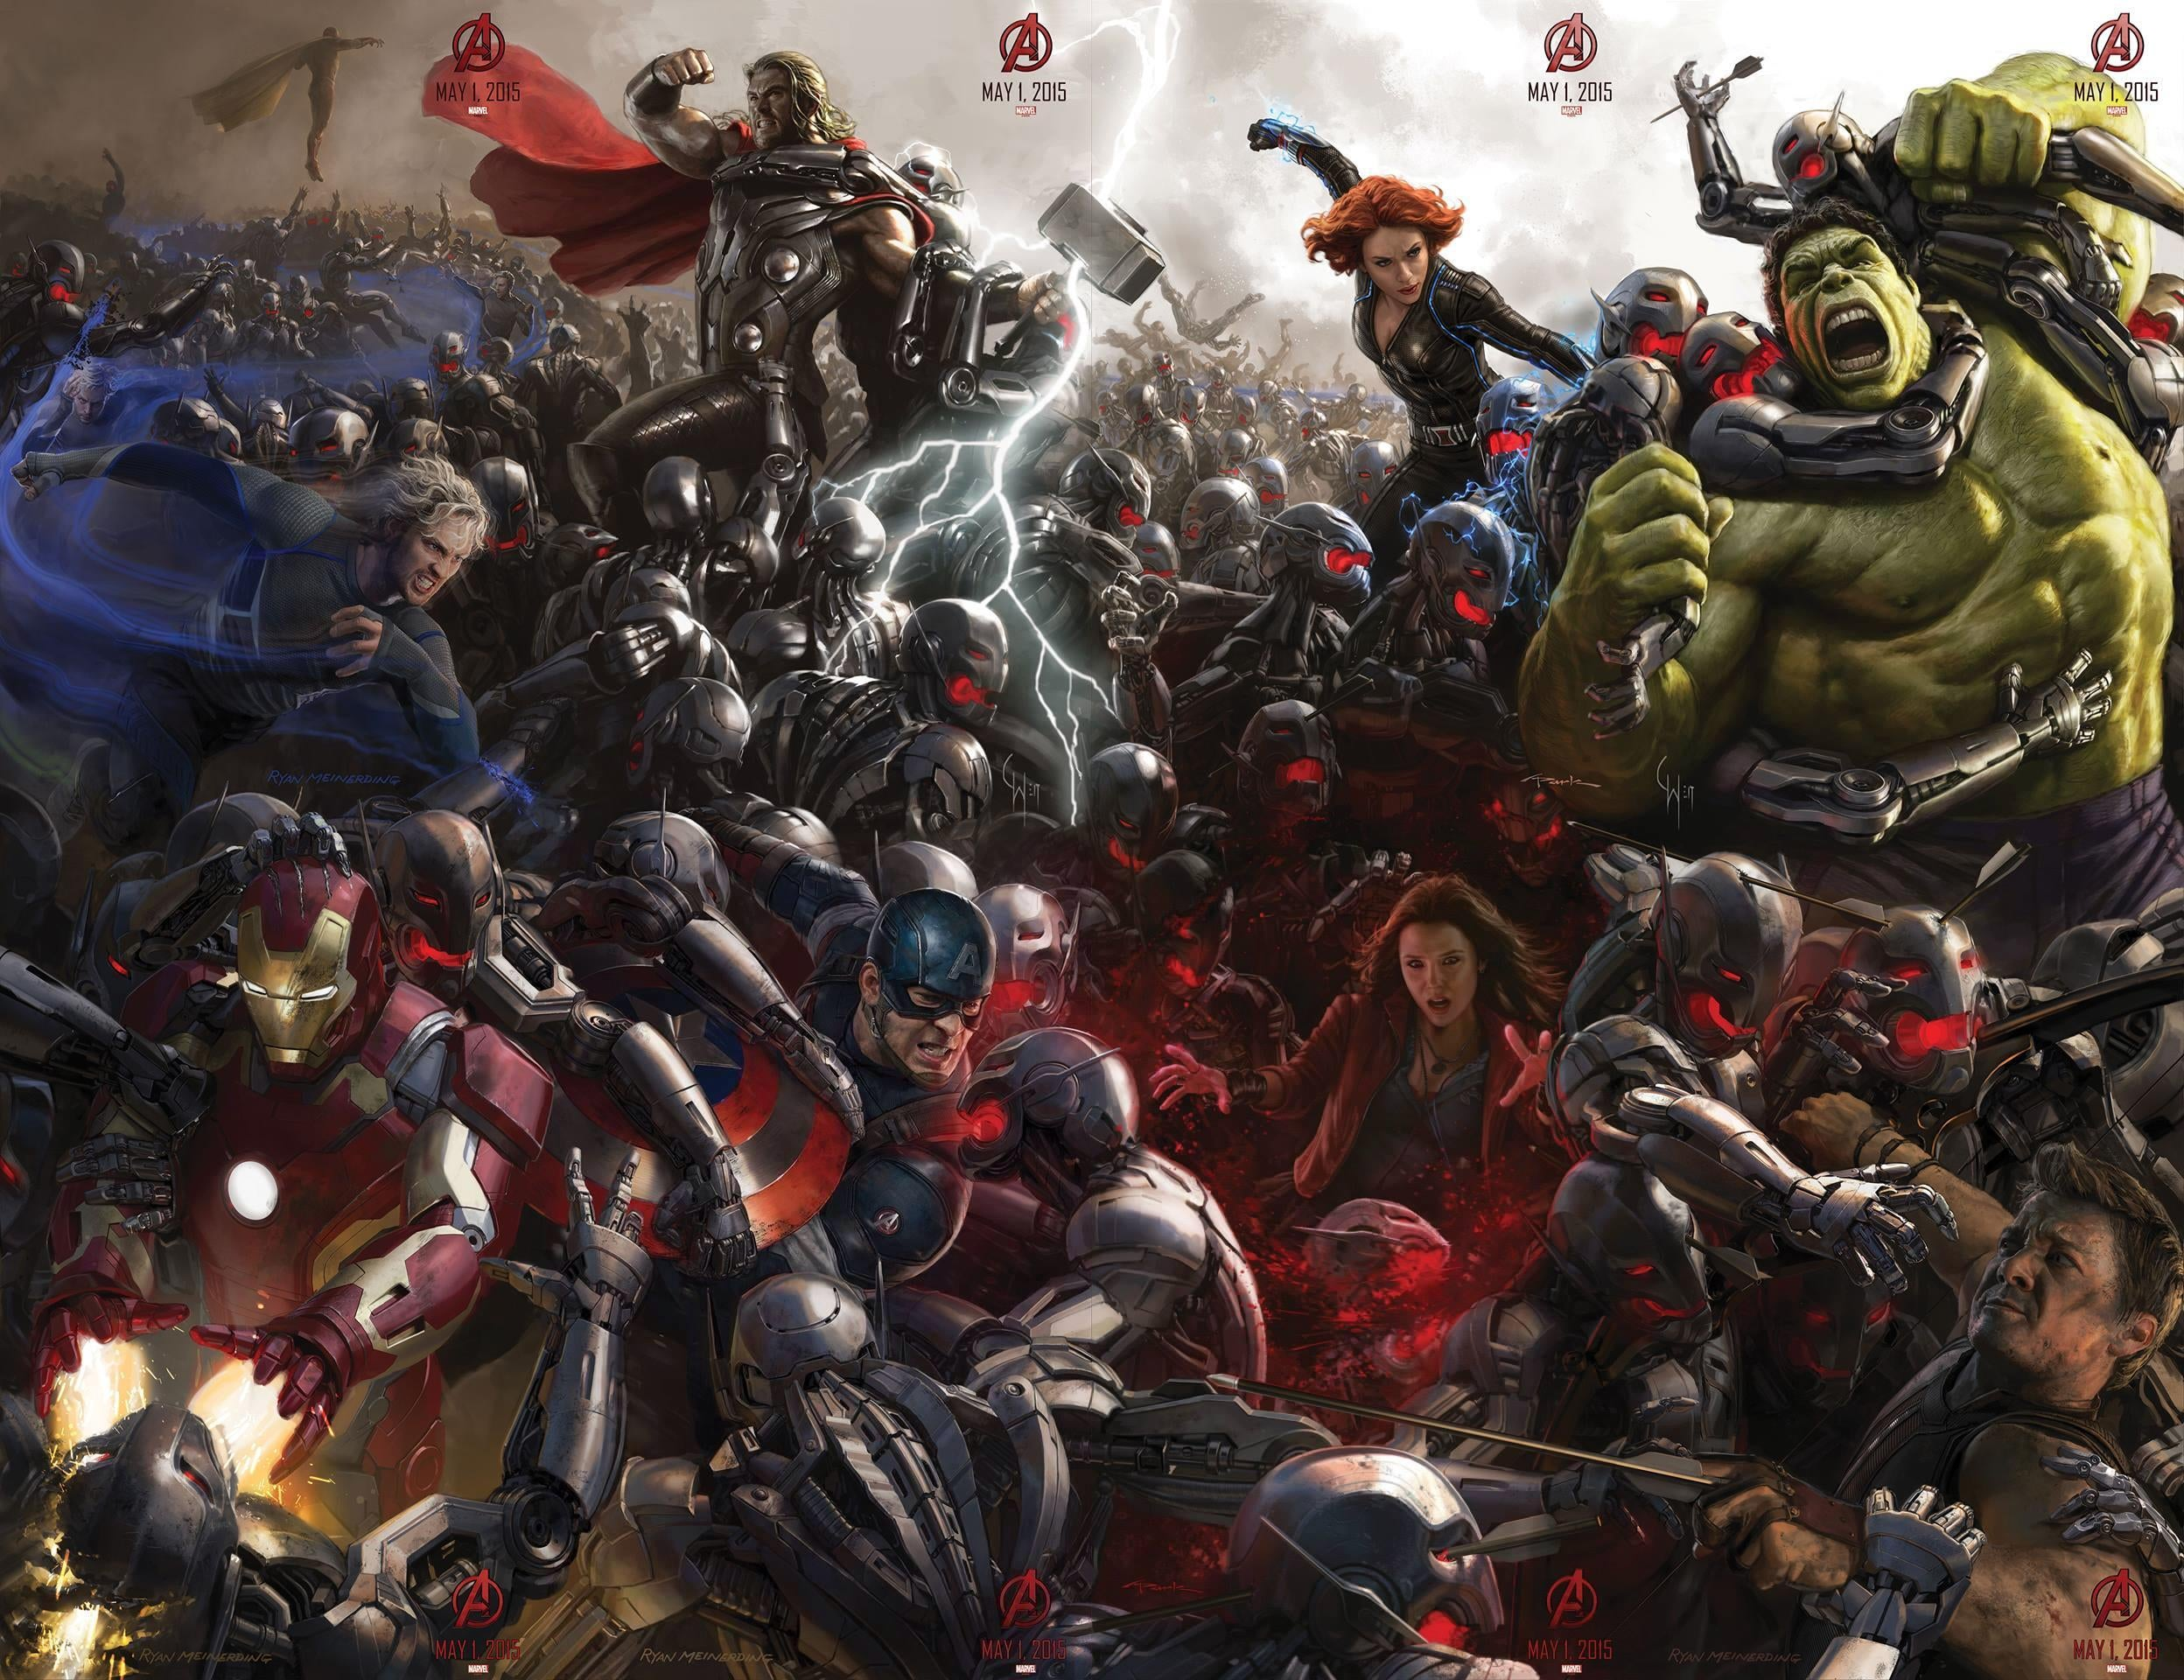 stan drones with The  Pleted Avengers Age Of Ultron  Ic Con Poster 1611370782 on New Nurgle Demon Teaser Spotted moreover Futuristic Space Suit together with The Evolution Of Captain Americas Uniform Ergt moreover Wel e To The War On Poachers furthermore Komplex28 Cyberpunk Conspiracy Speculative Fiction ToMjGpFWmNnzrofako0.